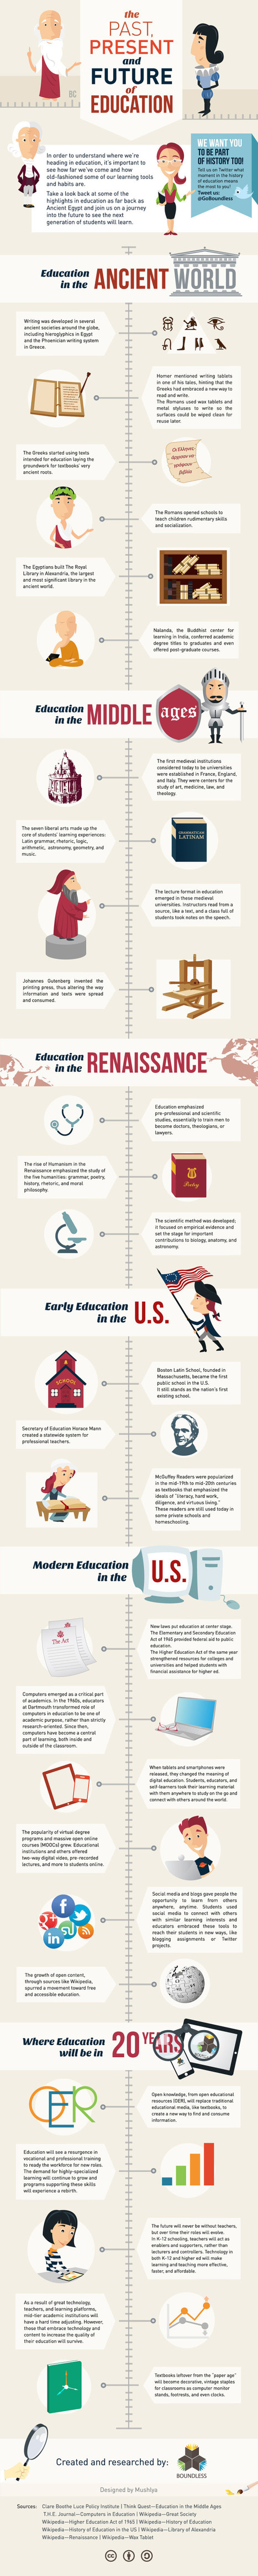 A Visual Guide To The Past, Present, And Future Of Education | Leadership Think Tank | Scoop.it